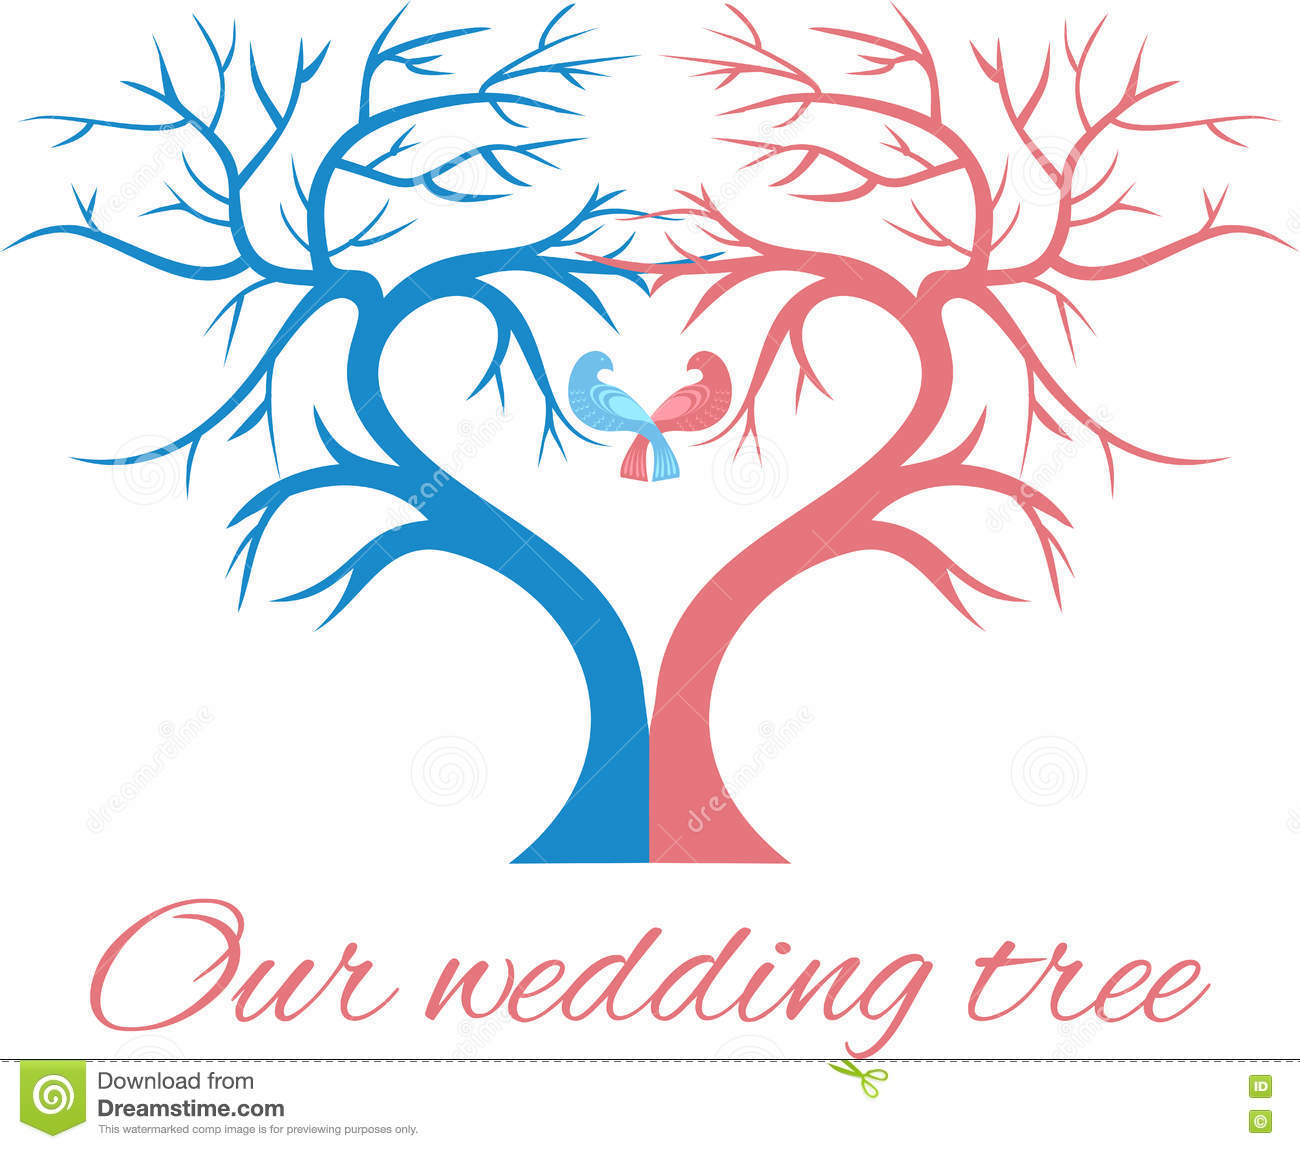 Wedding Tree Vector: The Wedding Tree In The Shape A Heart With Two Birds Stock